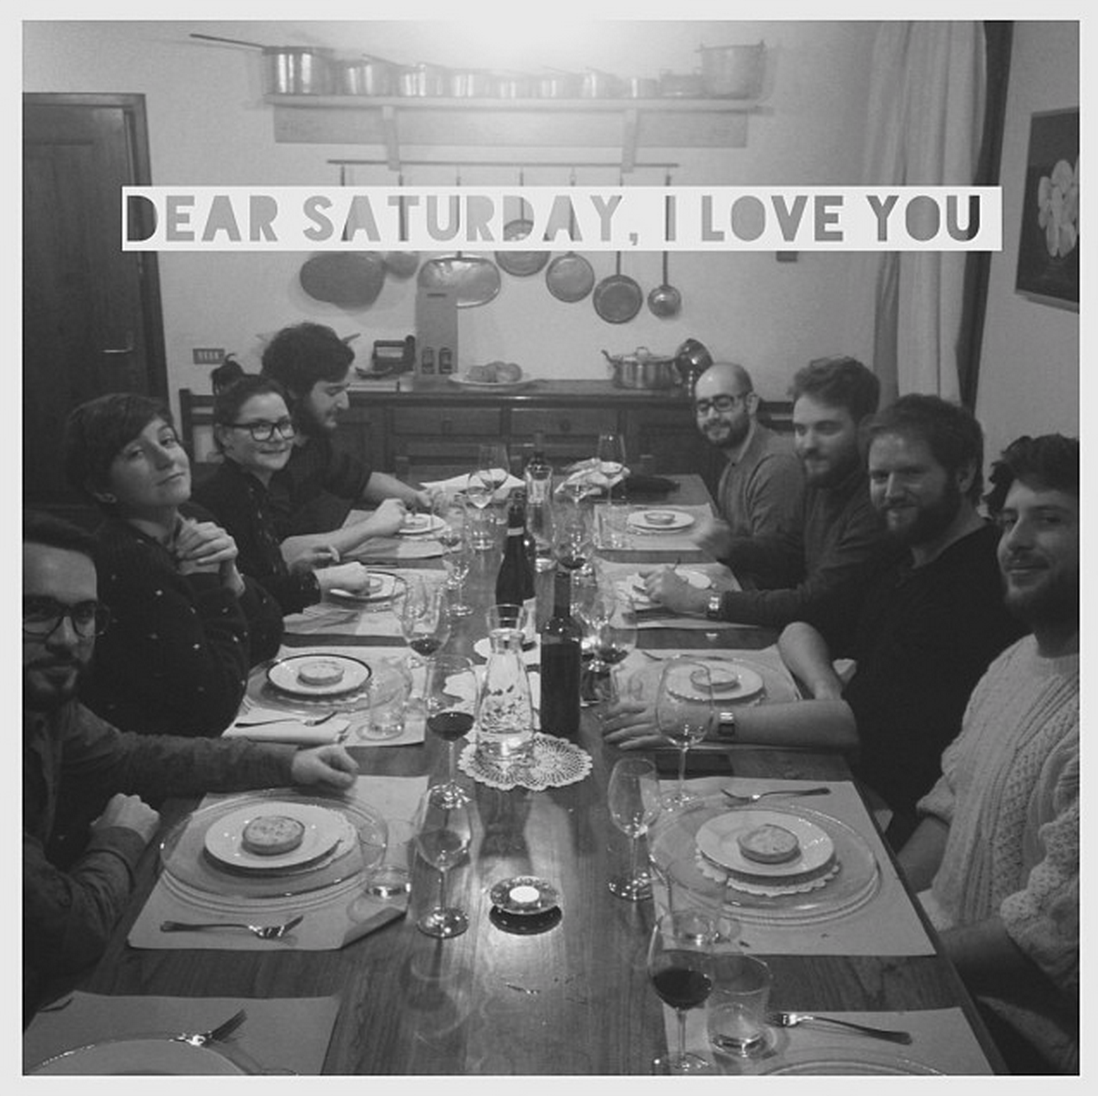 dear_saturday_i_love_you.png